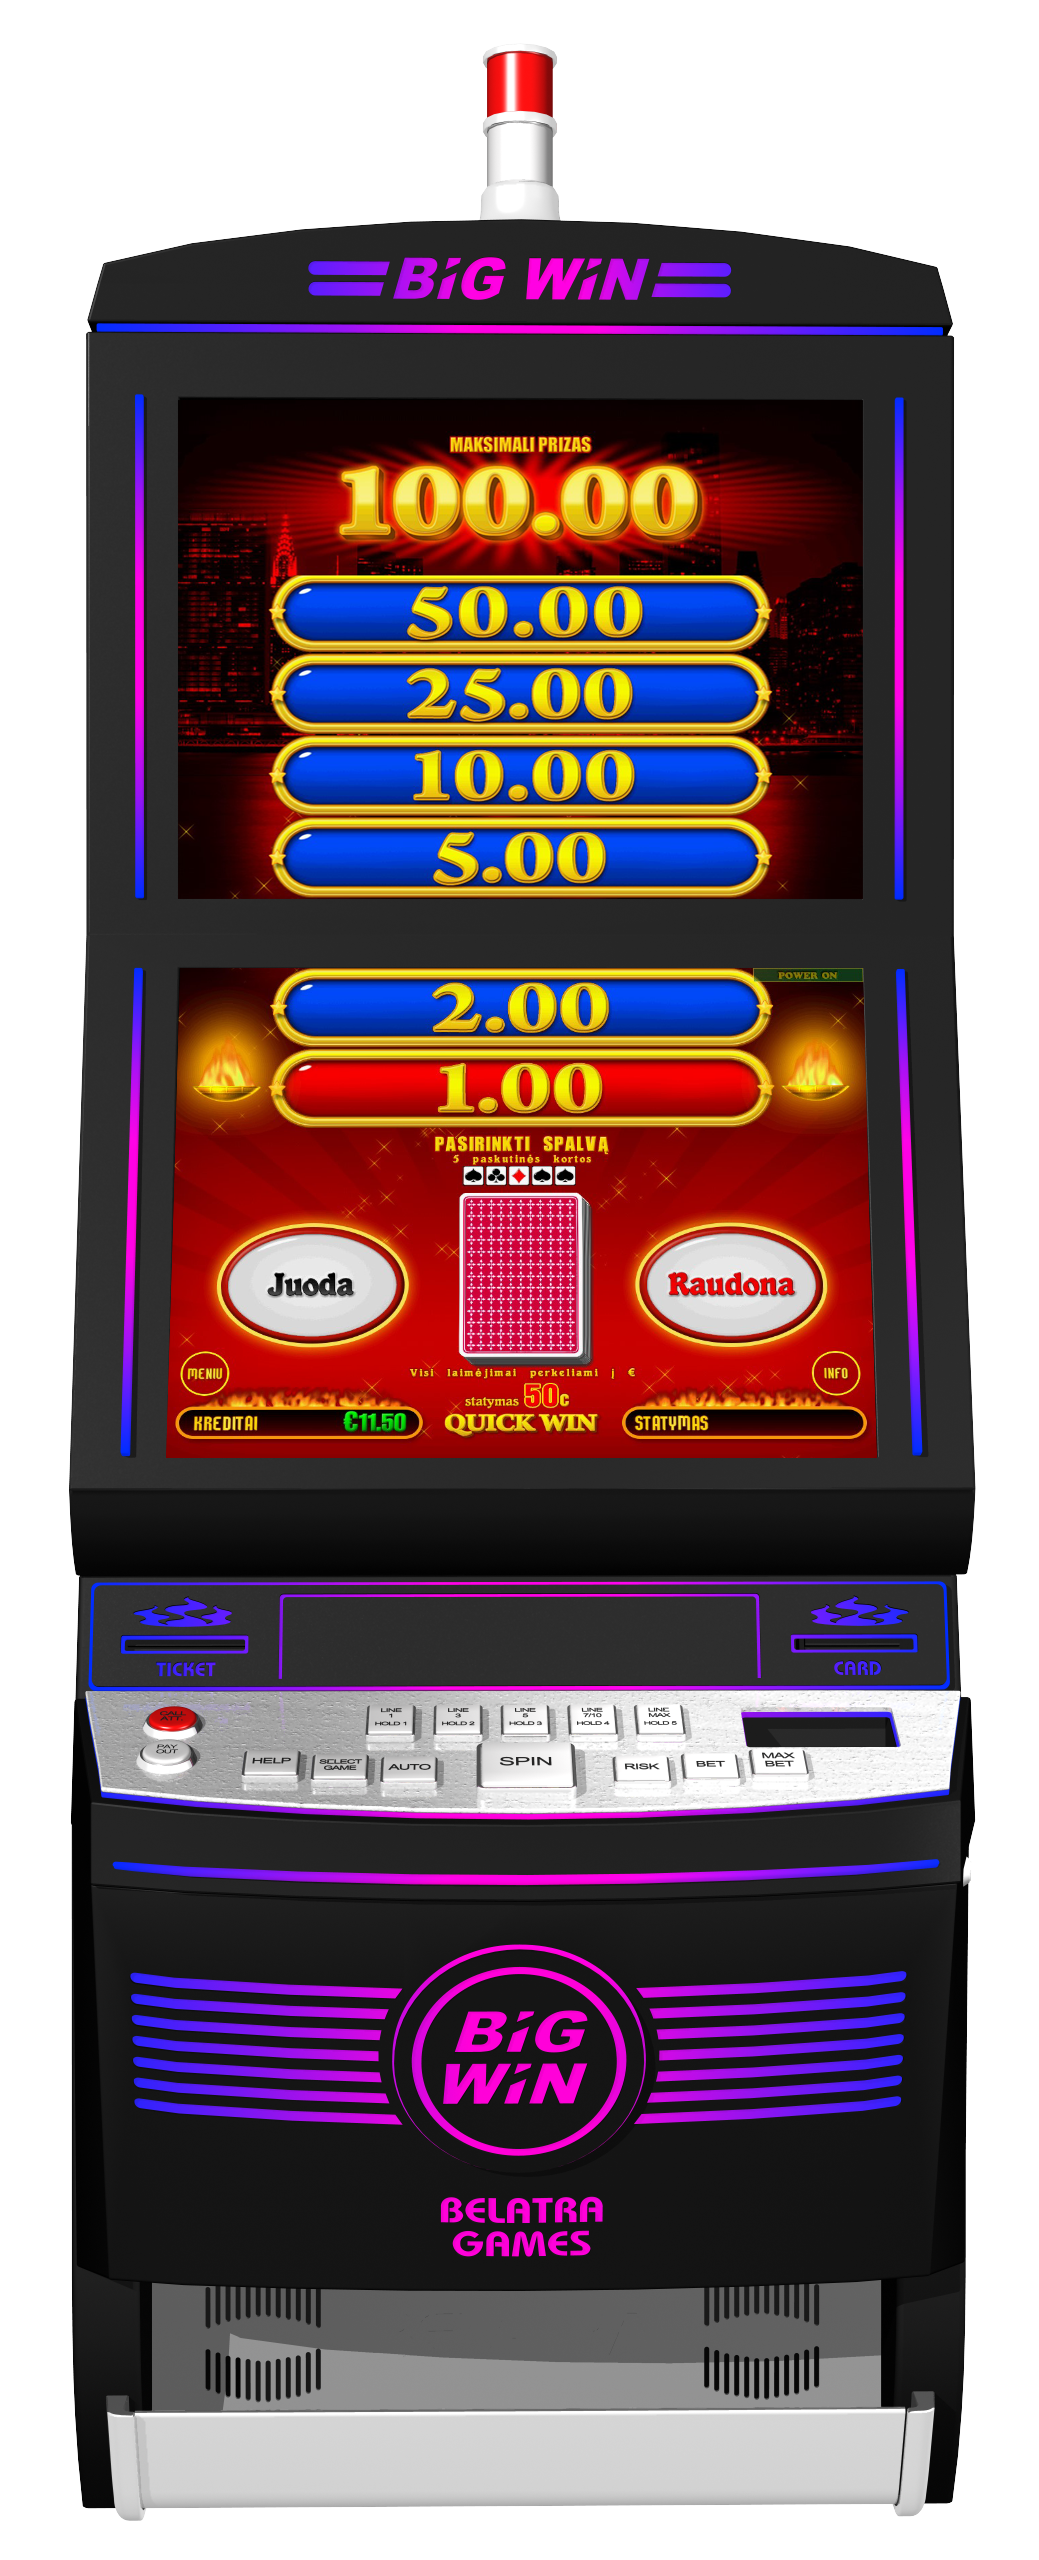 Play to win money at casino